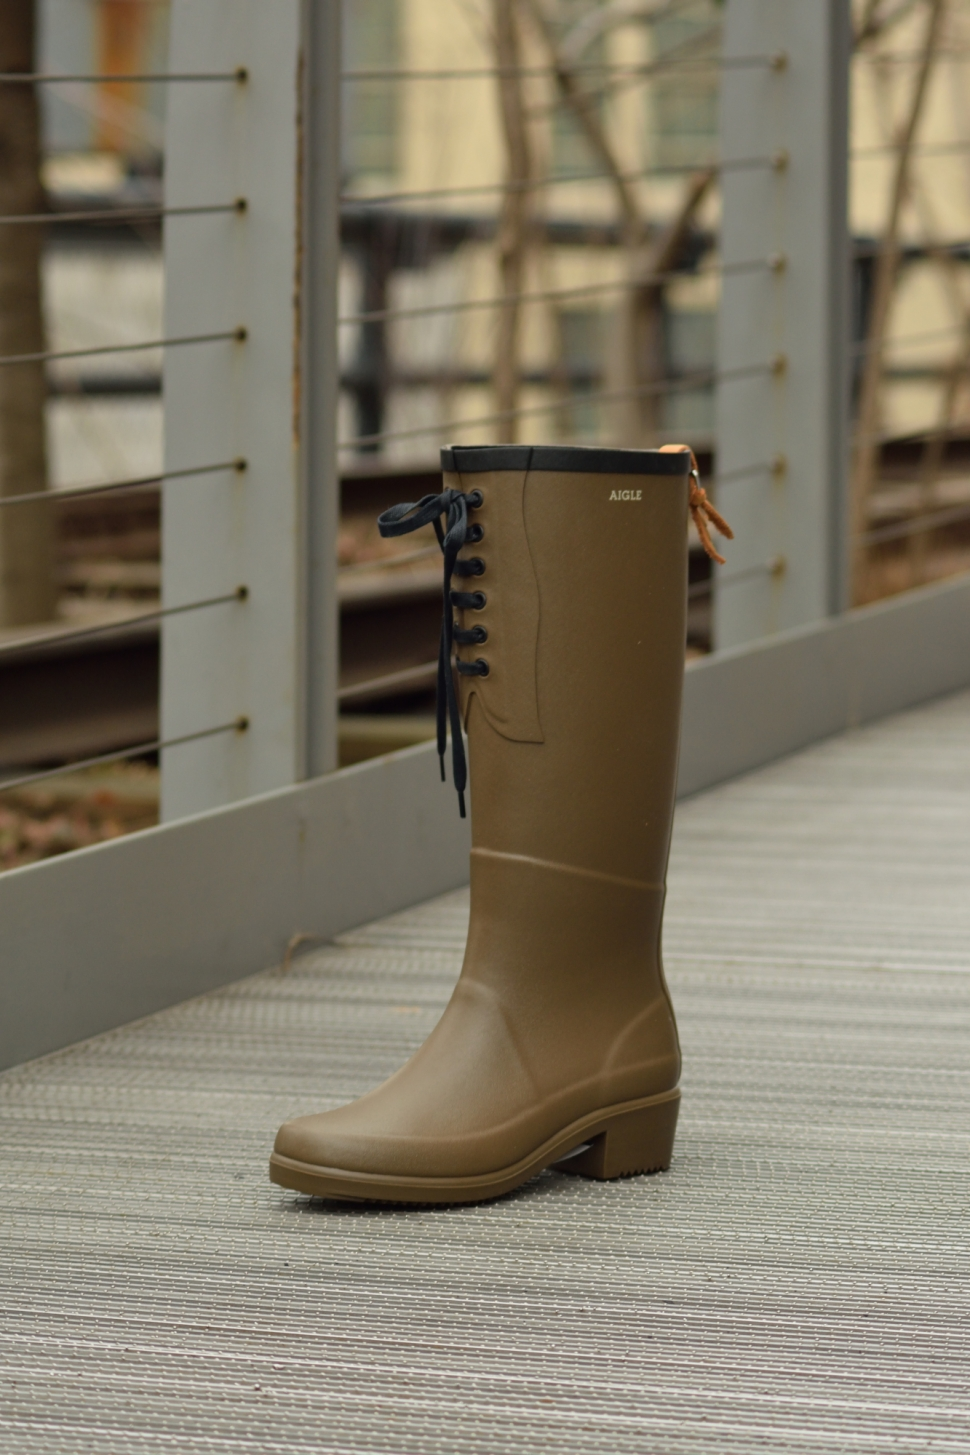 Aigle Boots In Time For Spring